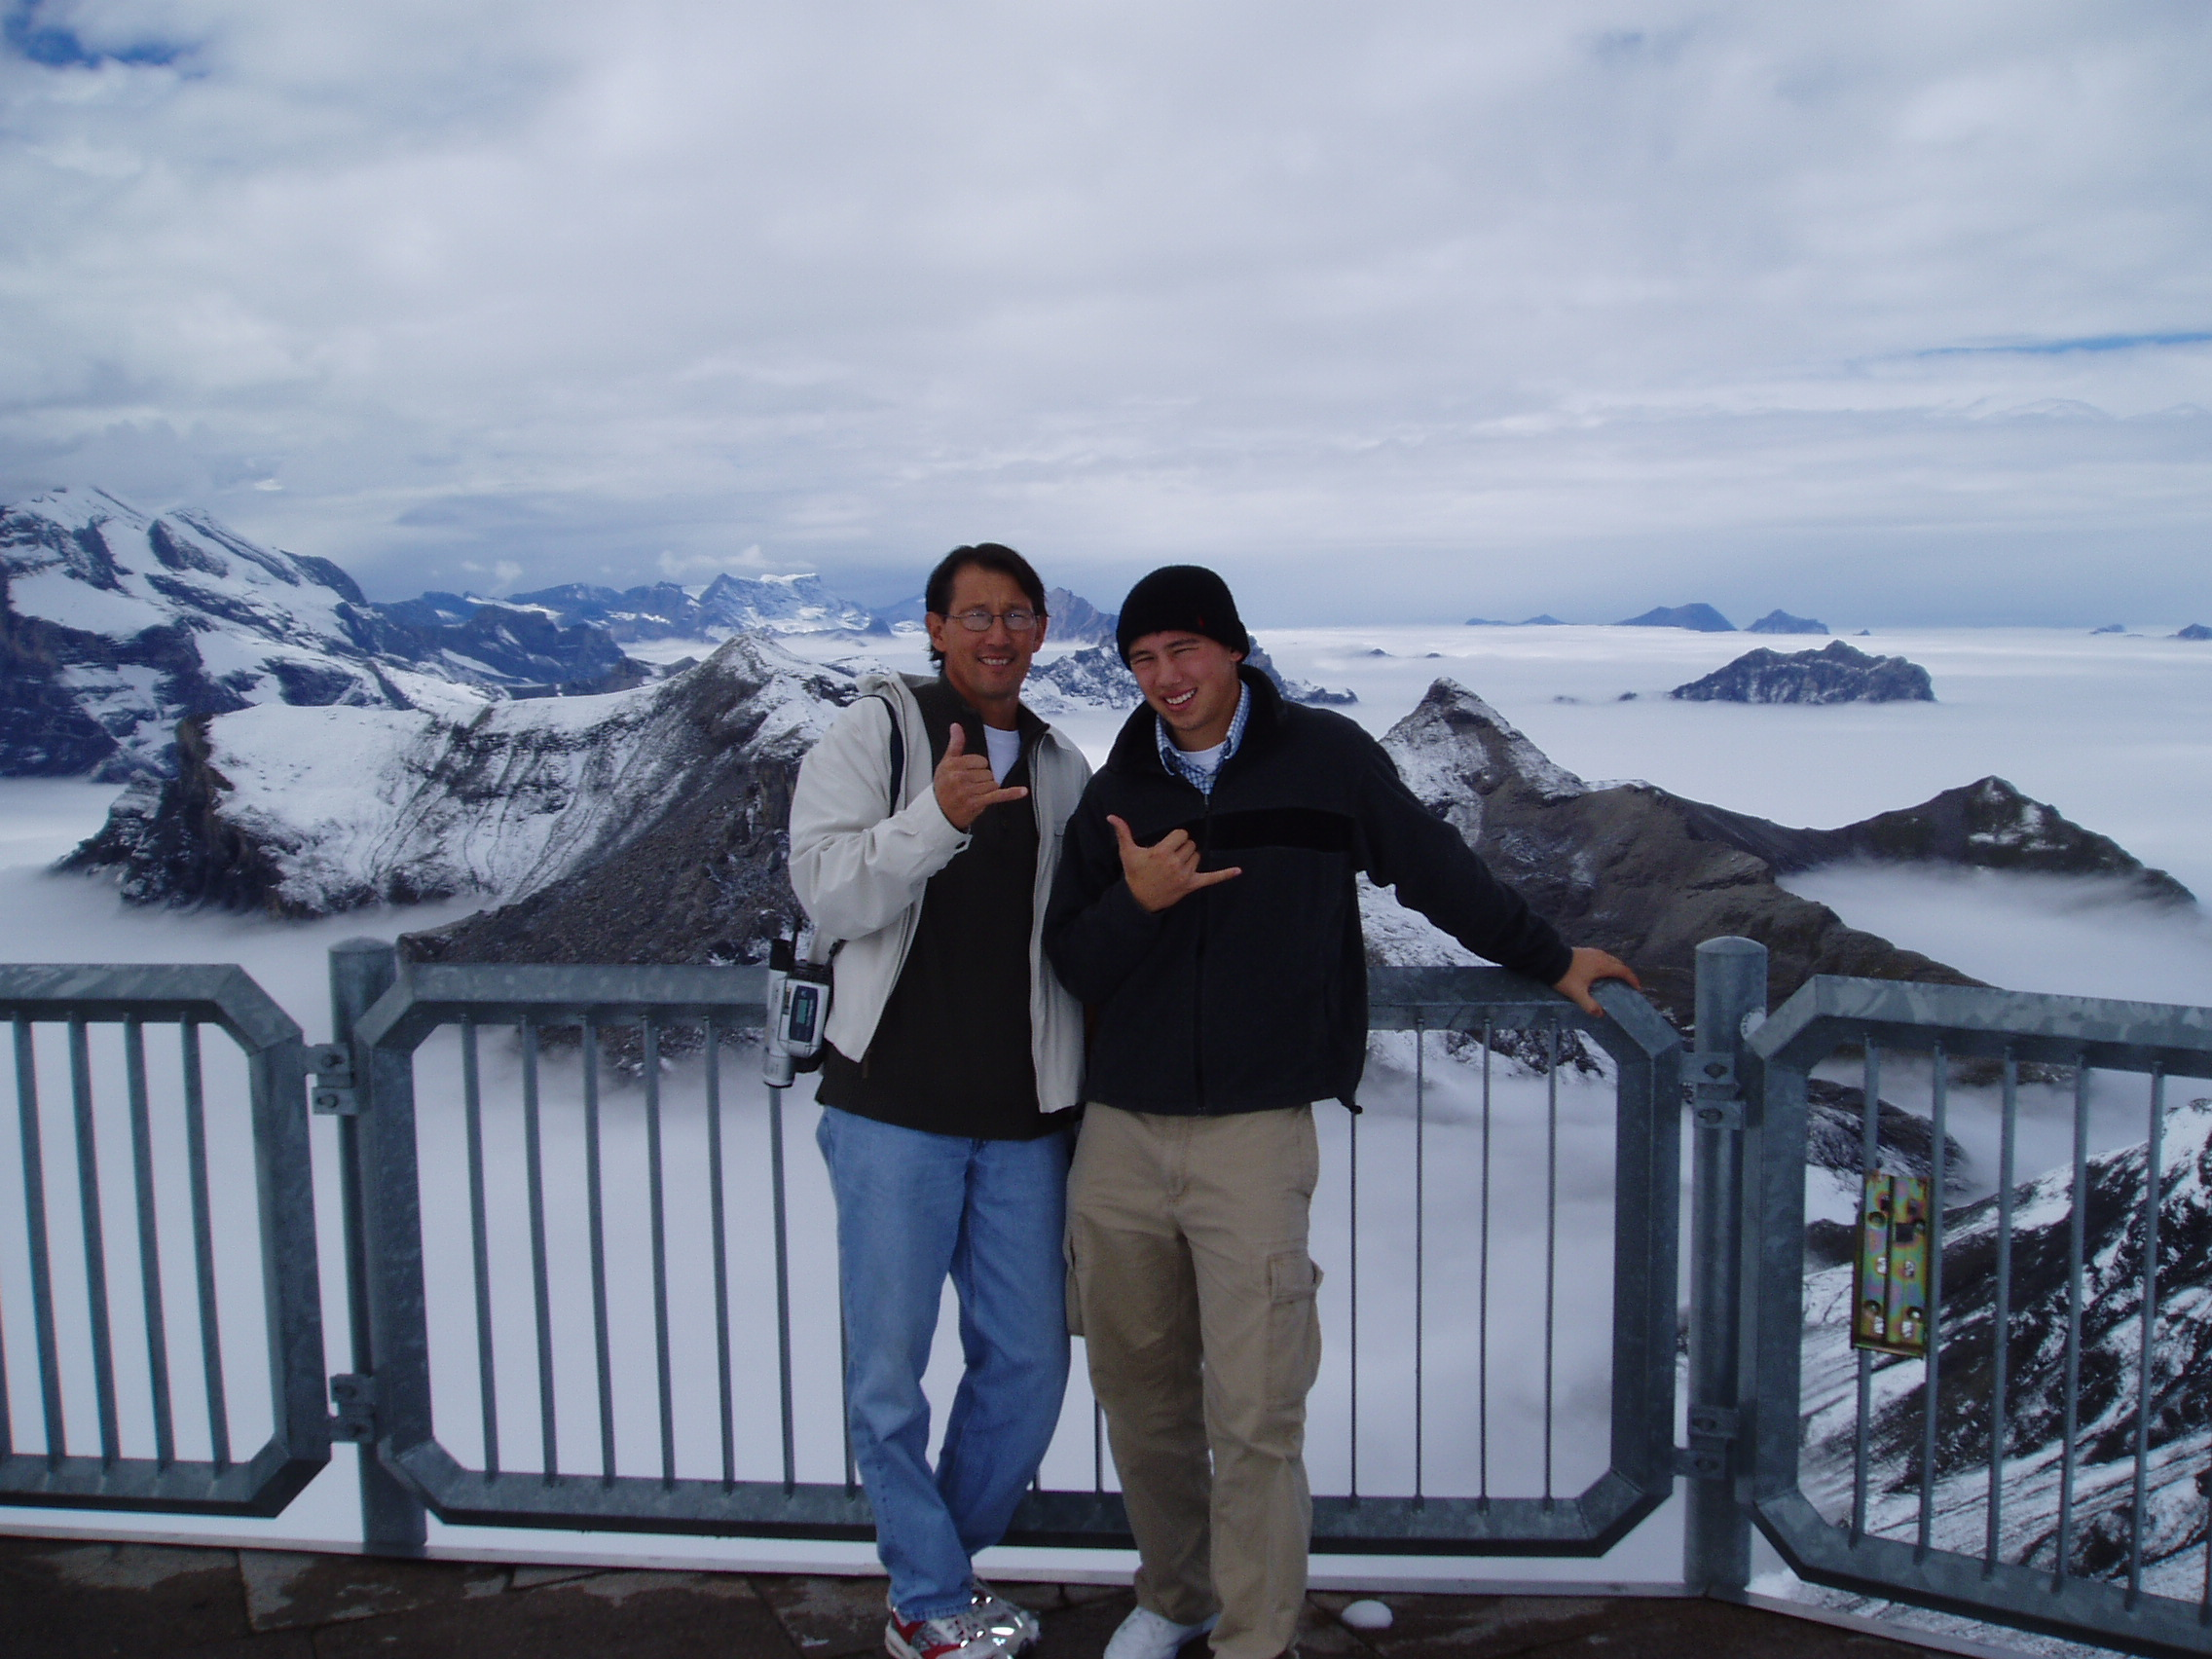 Roger and Jake in Switzerland